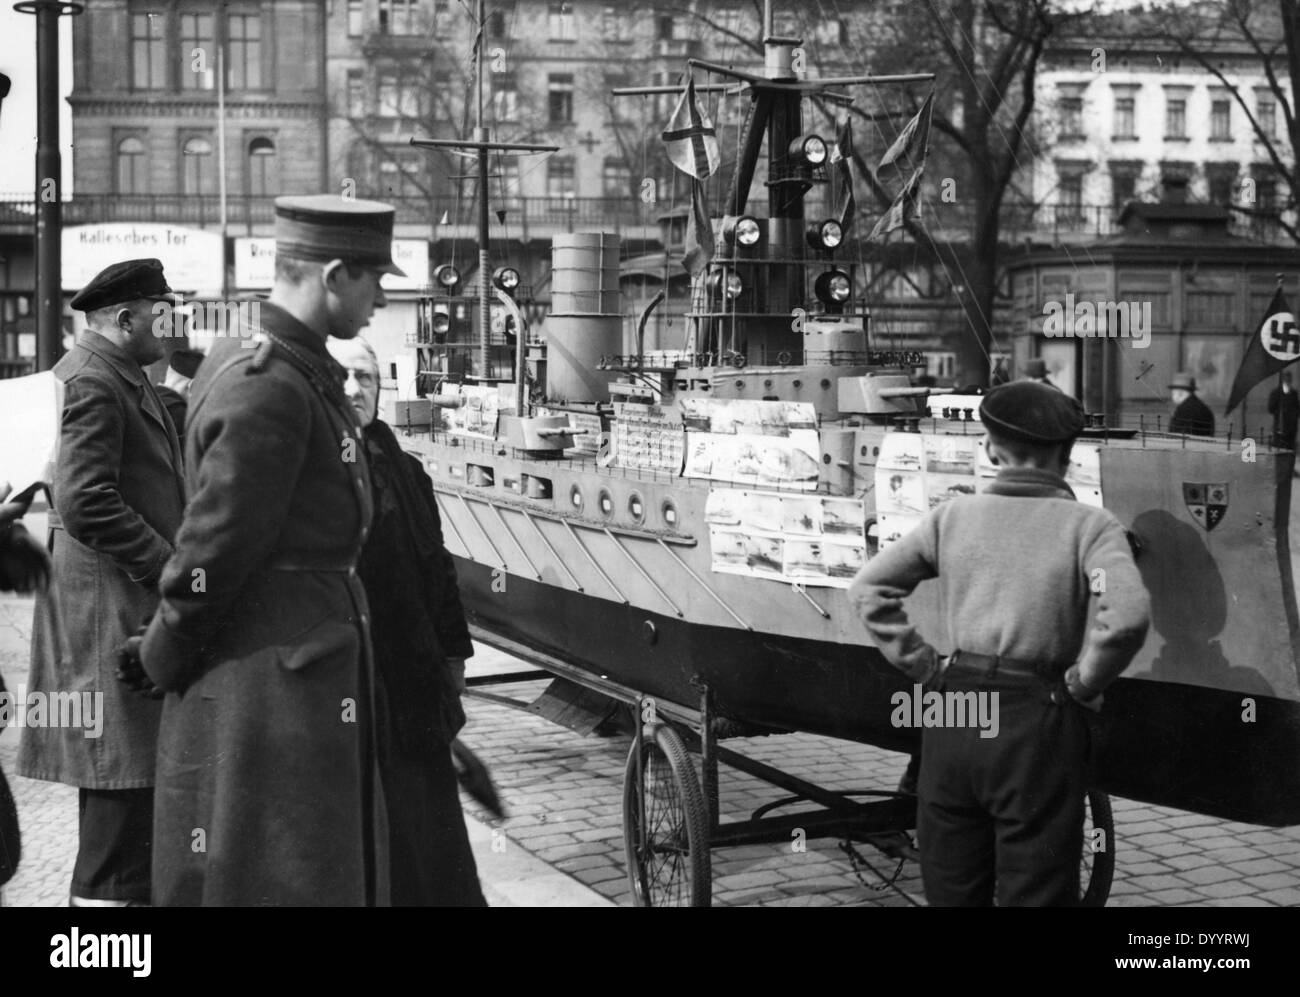 Model of a sunk armored cruiser in Berlin, 1933 - Stock Image